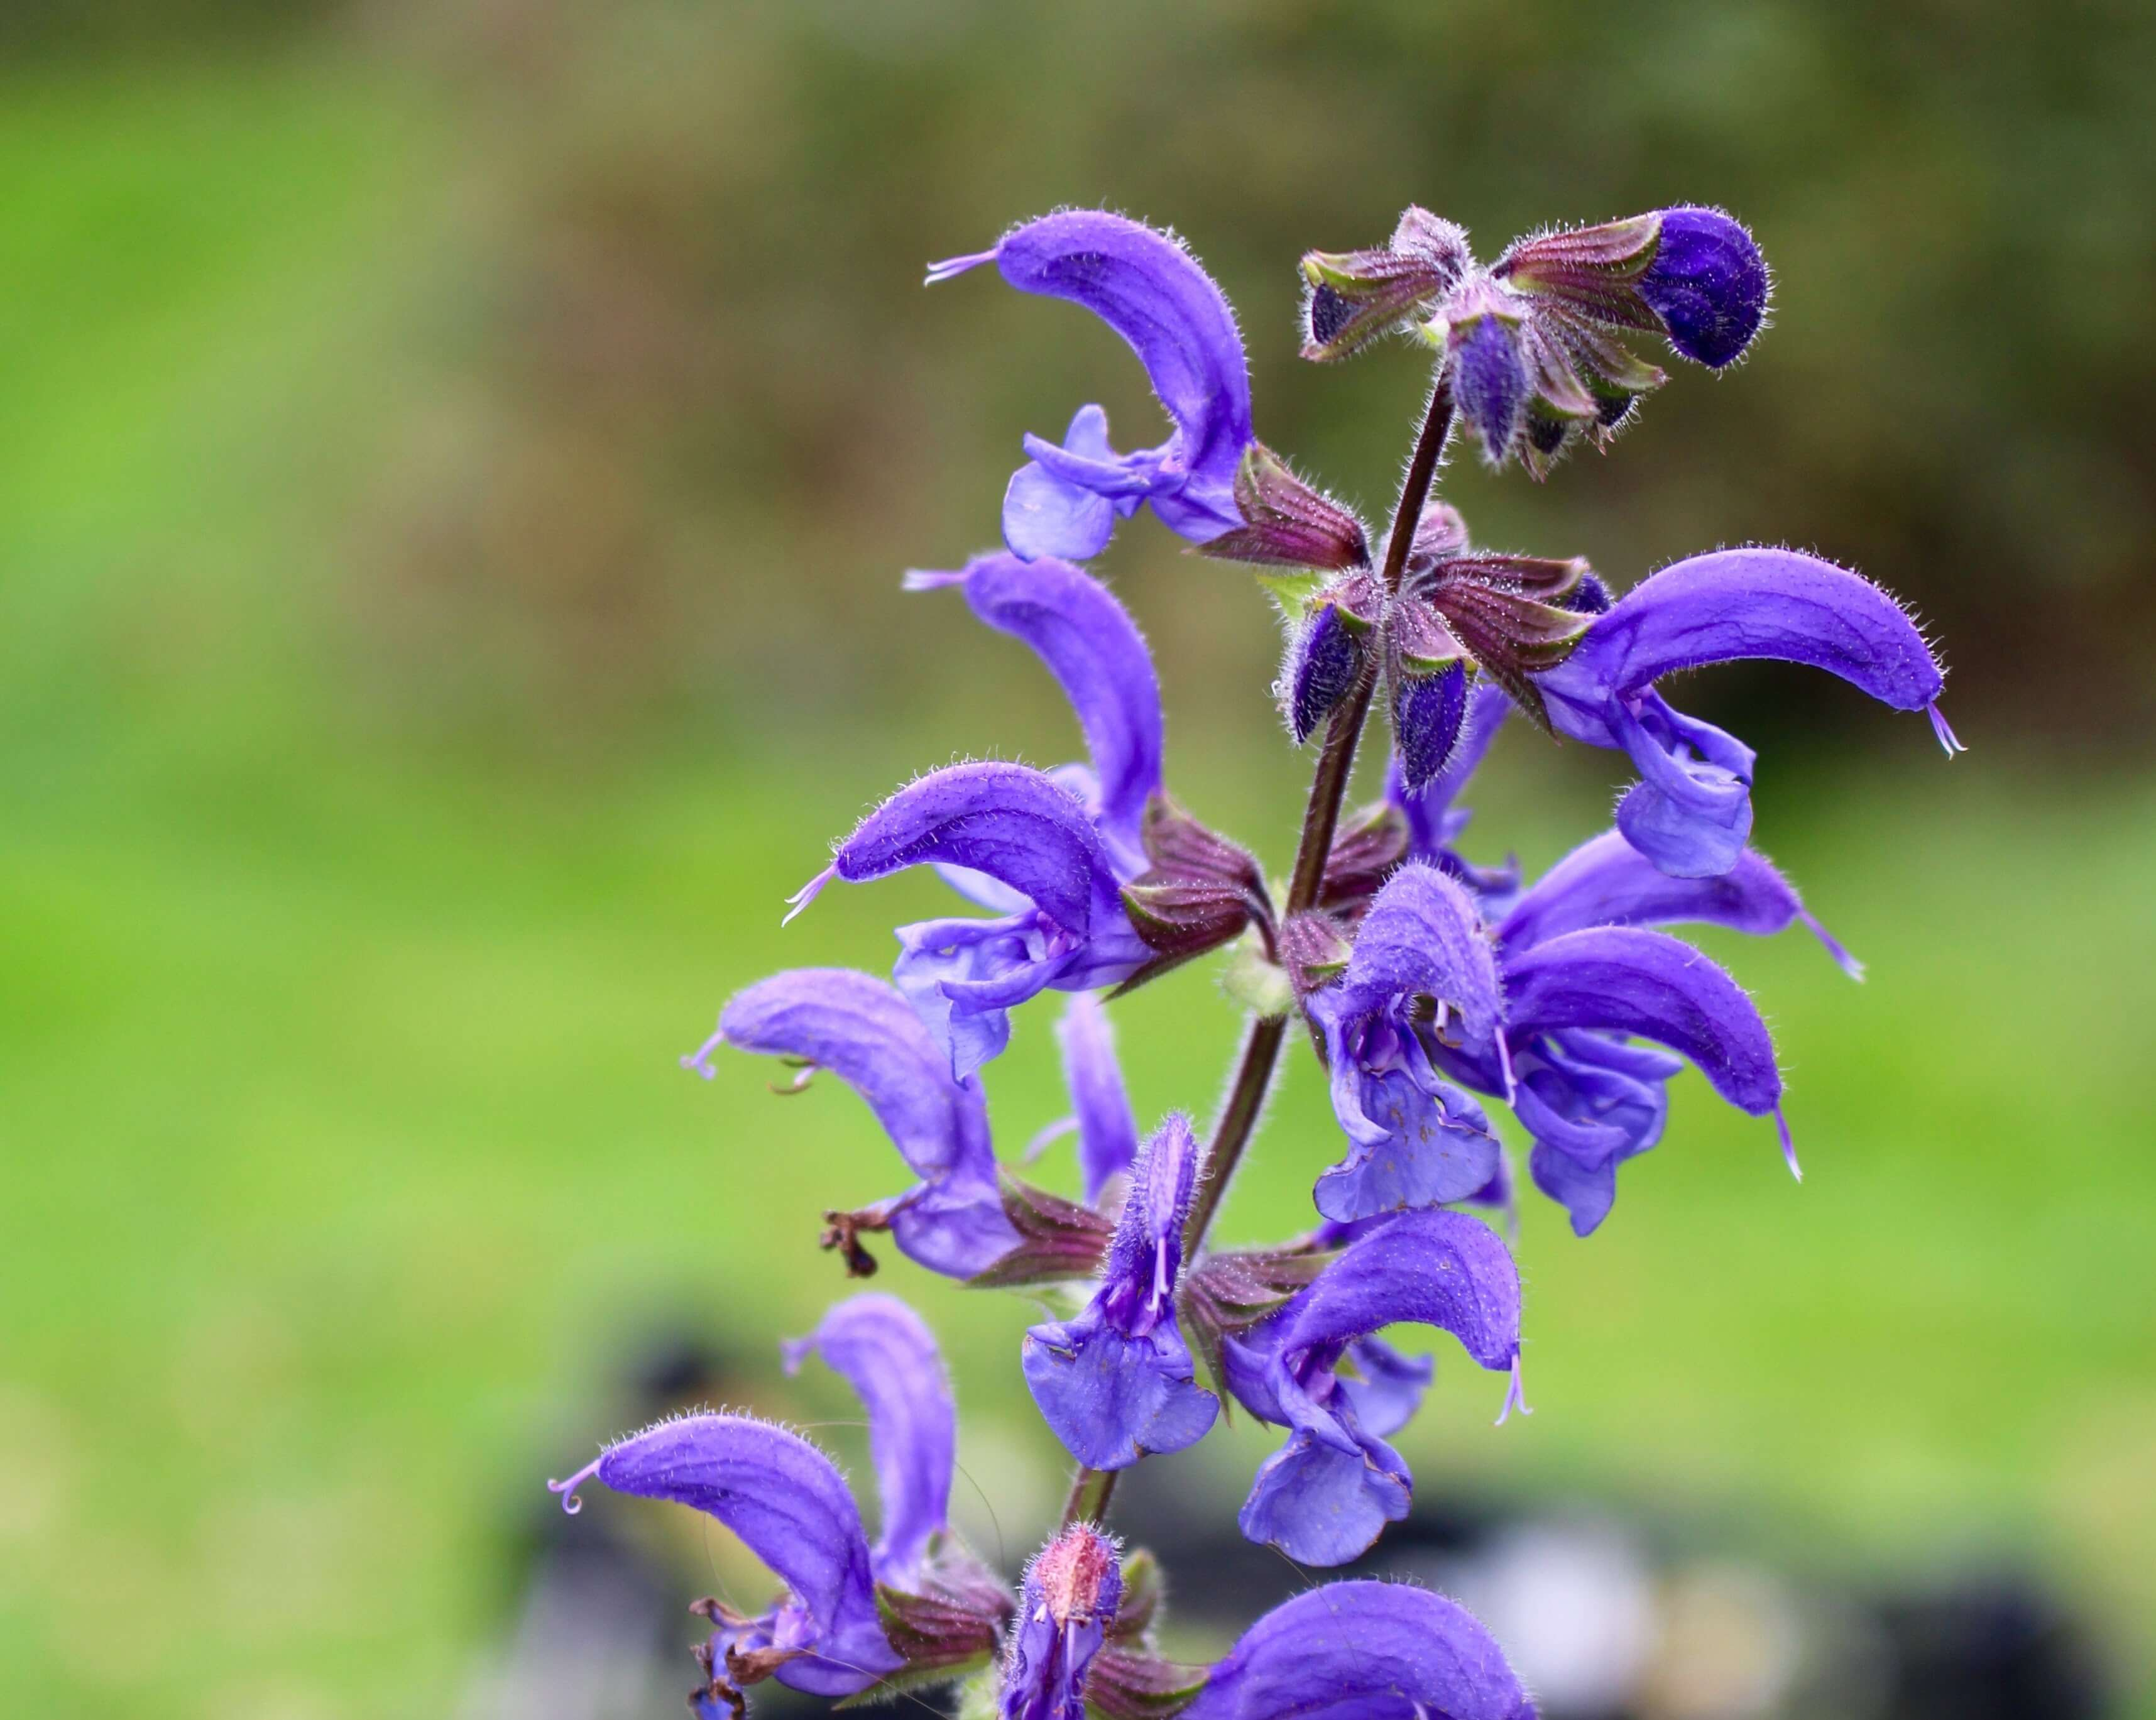 BMV Fragrances offers Clary Sage essential oil including 100% Pure & Natural Clary Sage Oil (Salvia Sclarea Oil) is used widely in perfumes and as a muscatel flavoring for vermouths wines and liqueurs.